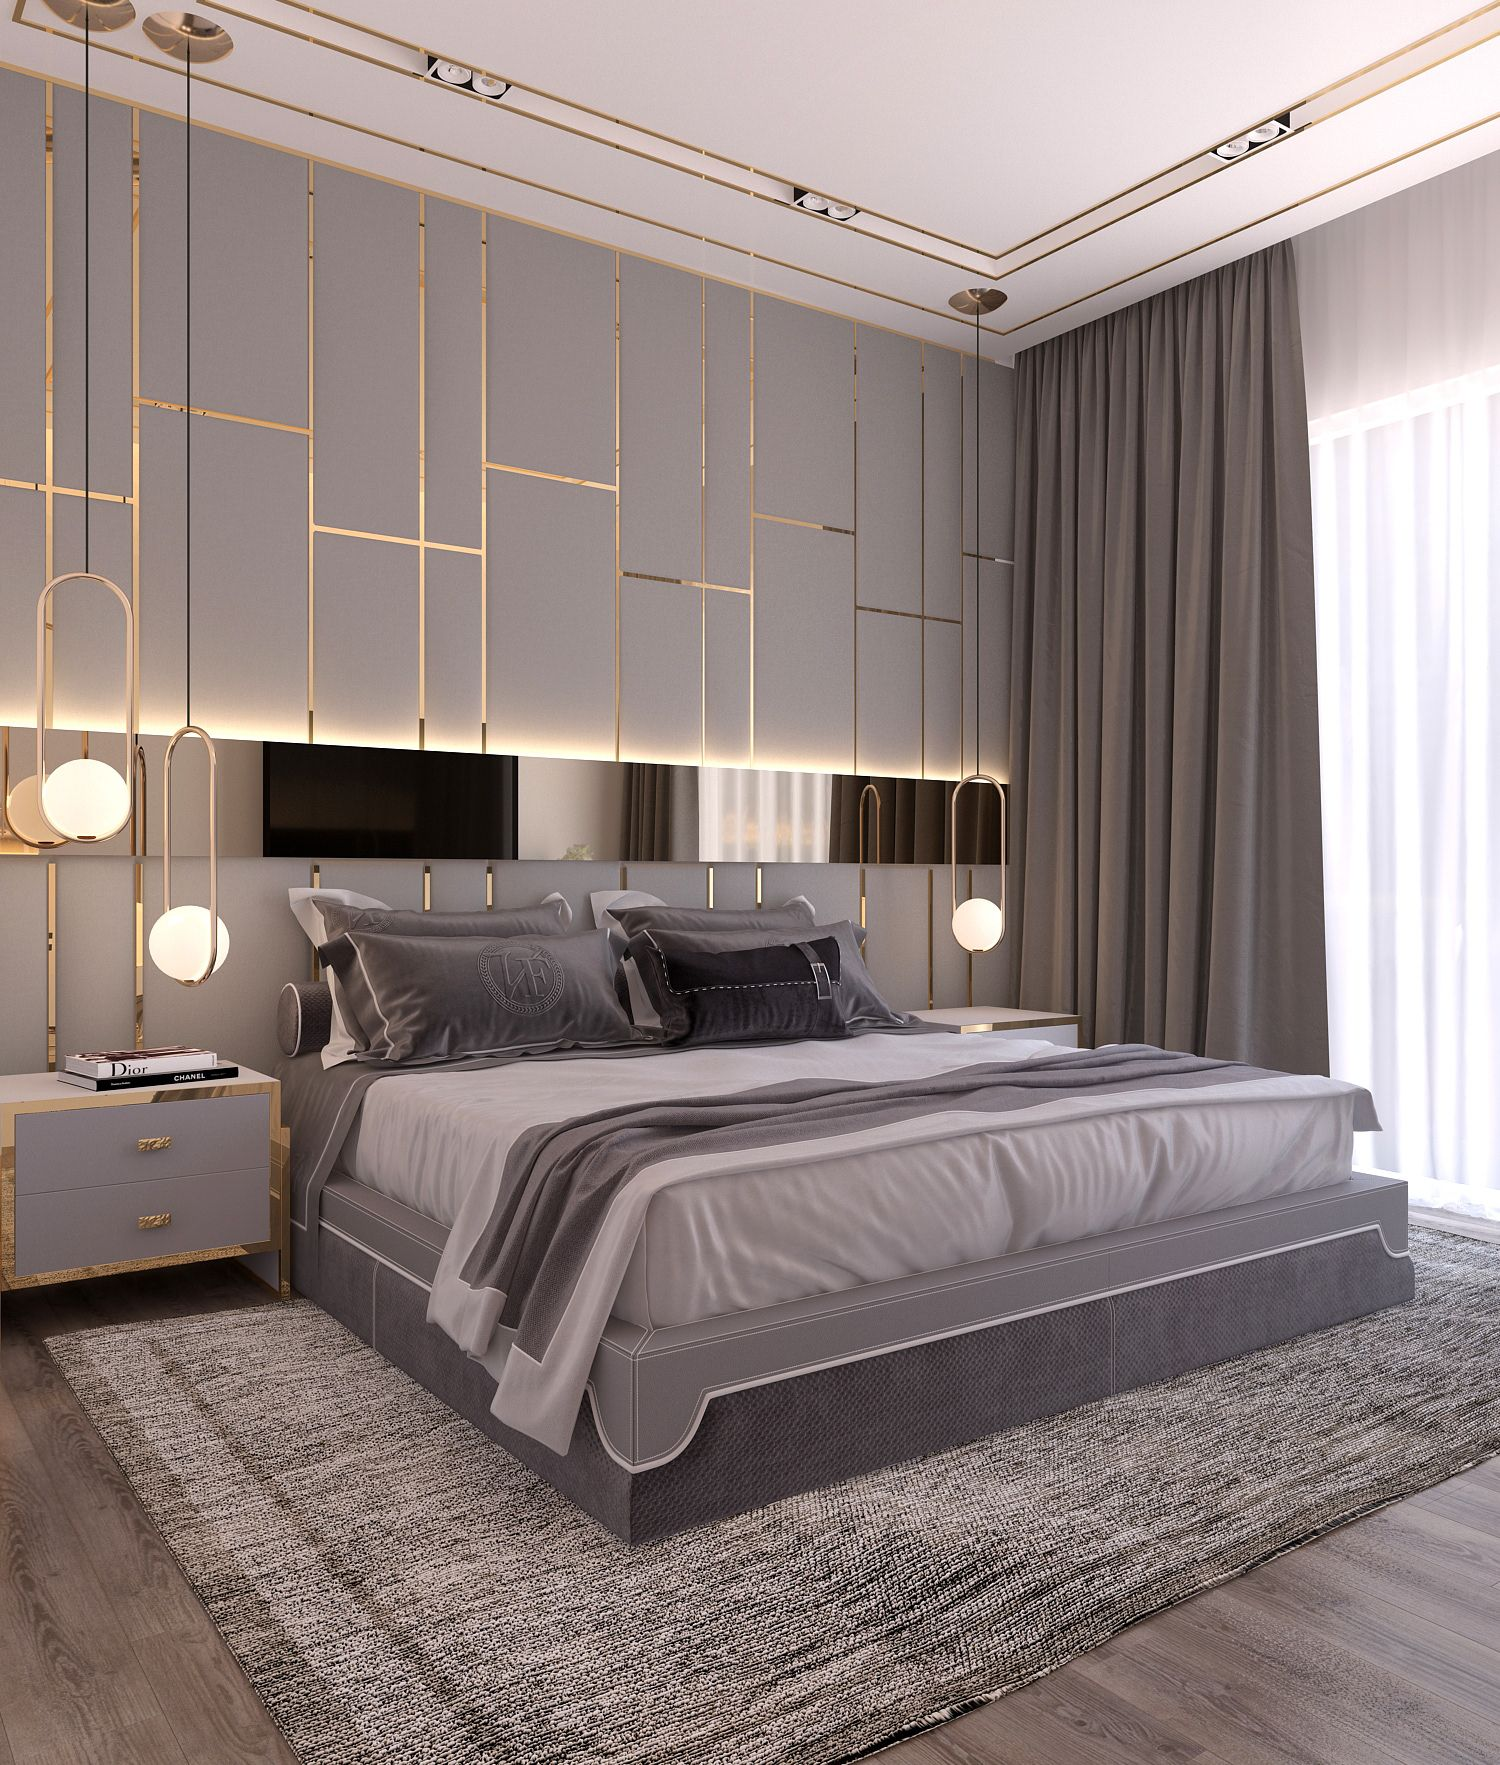 Best Modern Style Bedroom Dubai Project On Behance Modern 640 x 480